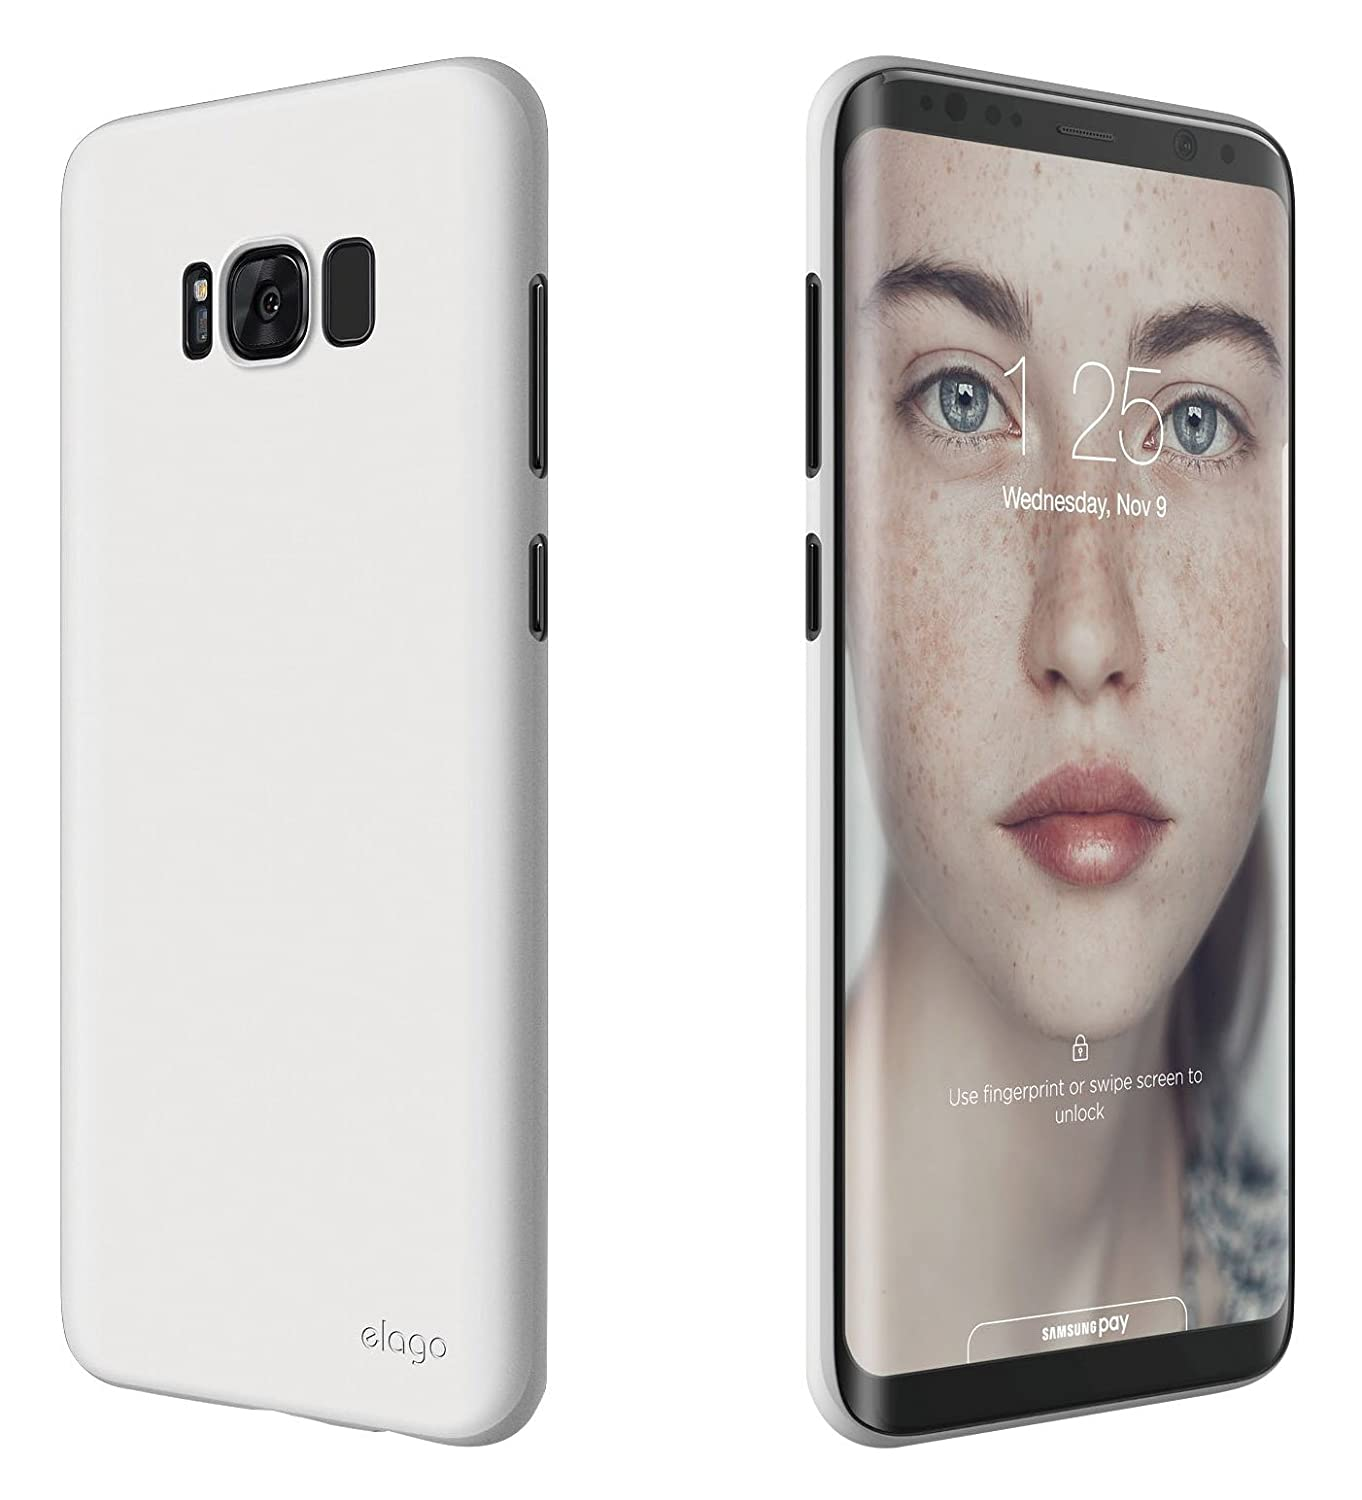 newest collection a3c47 88ed0 elago Galaxy S8 Plus Case [Origin][White] - [Device Fitting  Tested][Minimalistic][Scratch Protection Only][True Fit] - for Galaxy S8  Plus